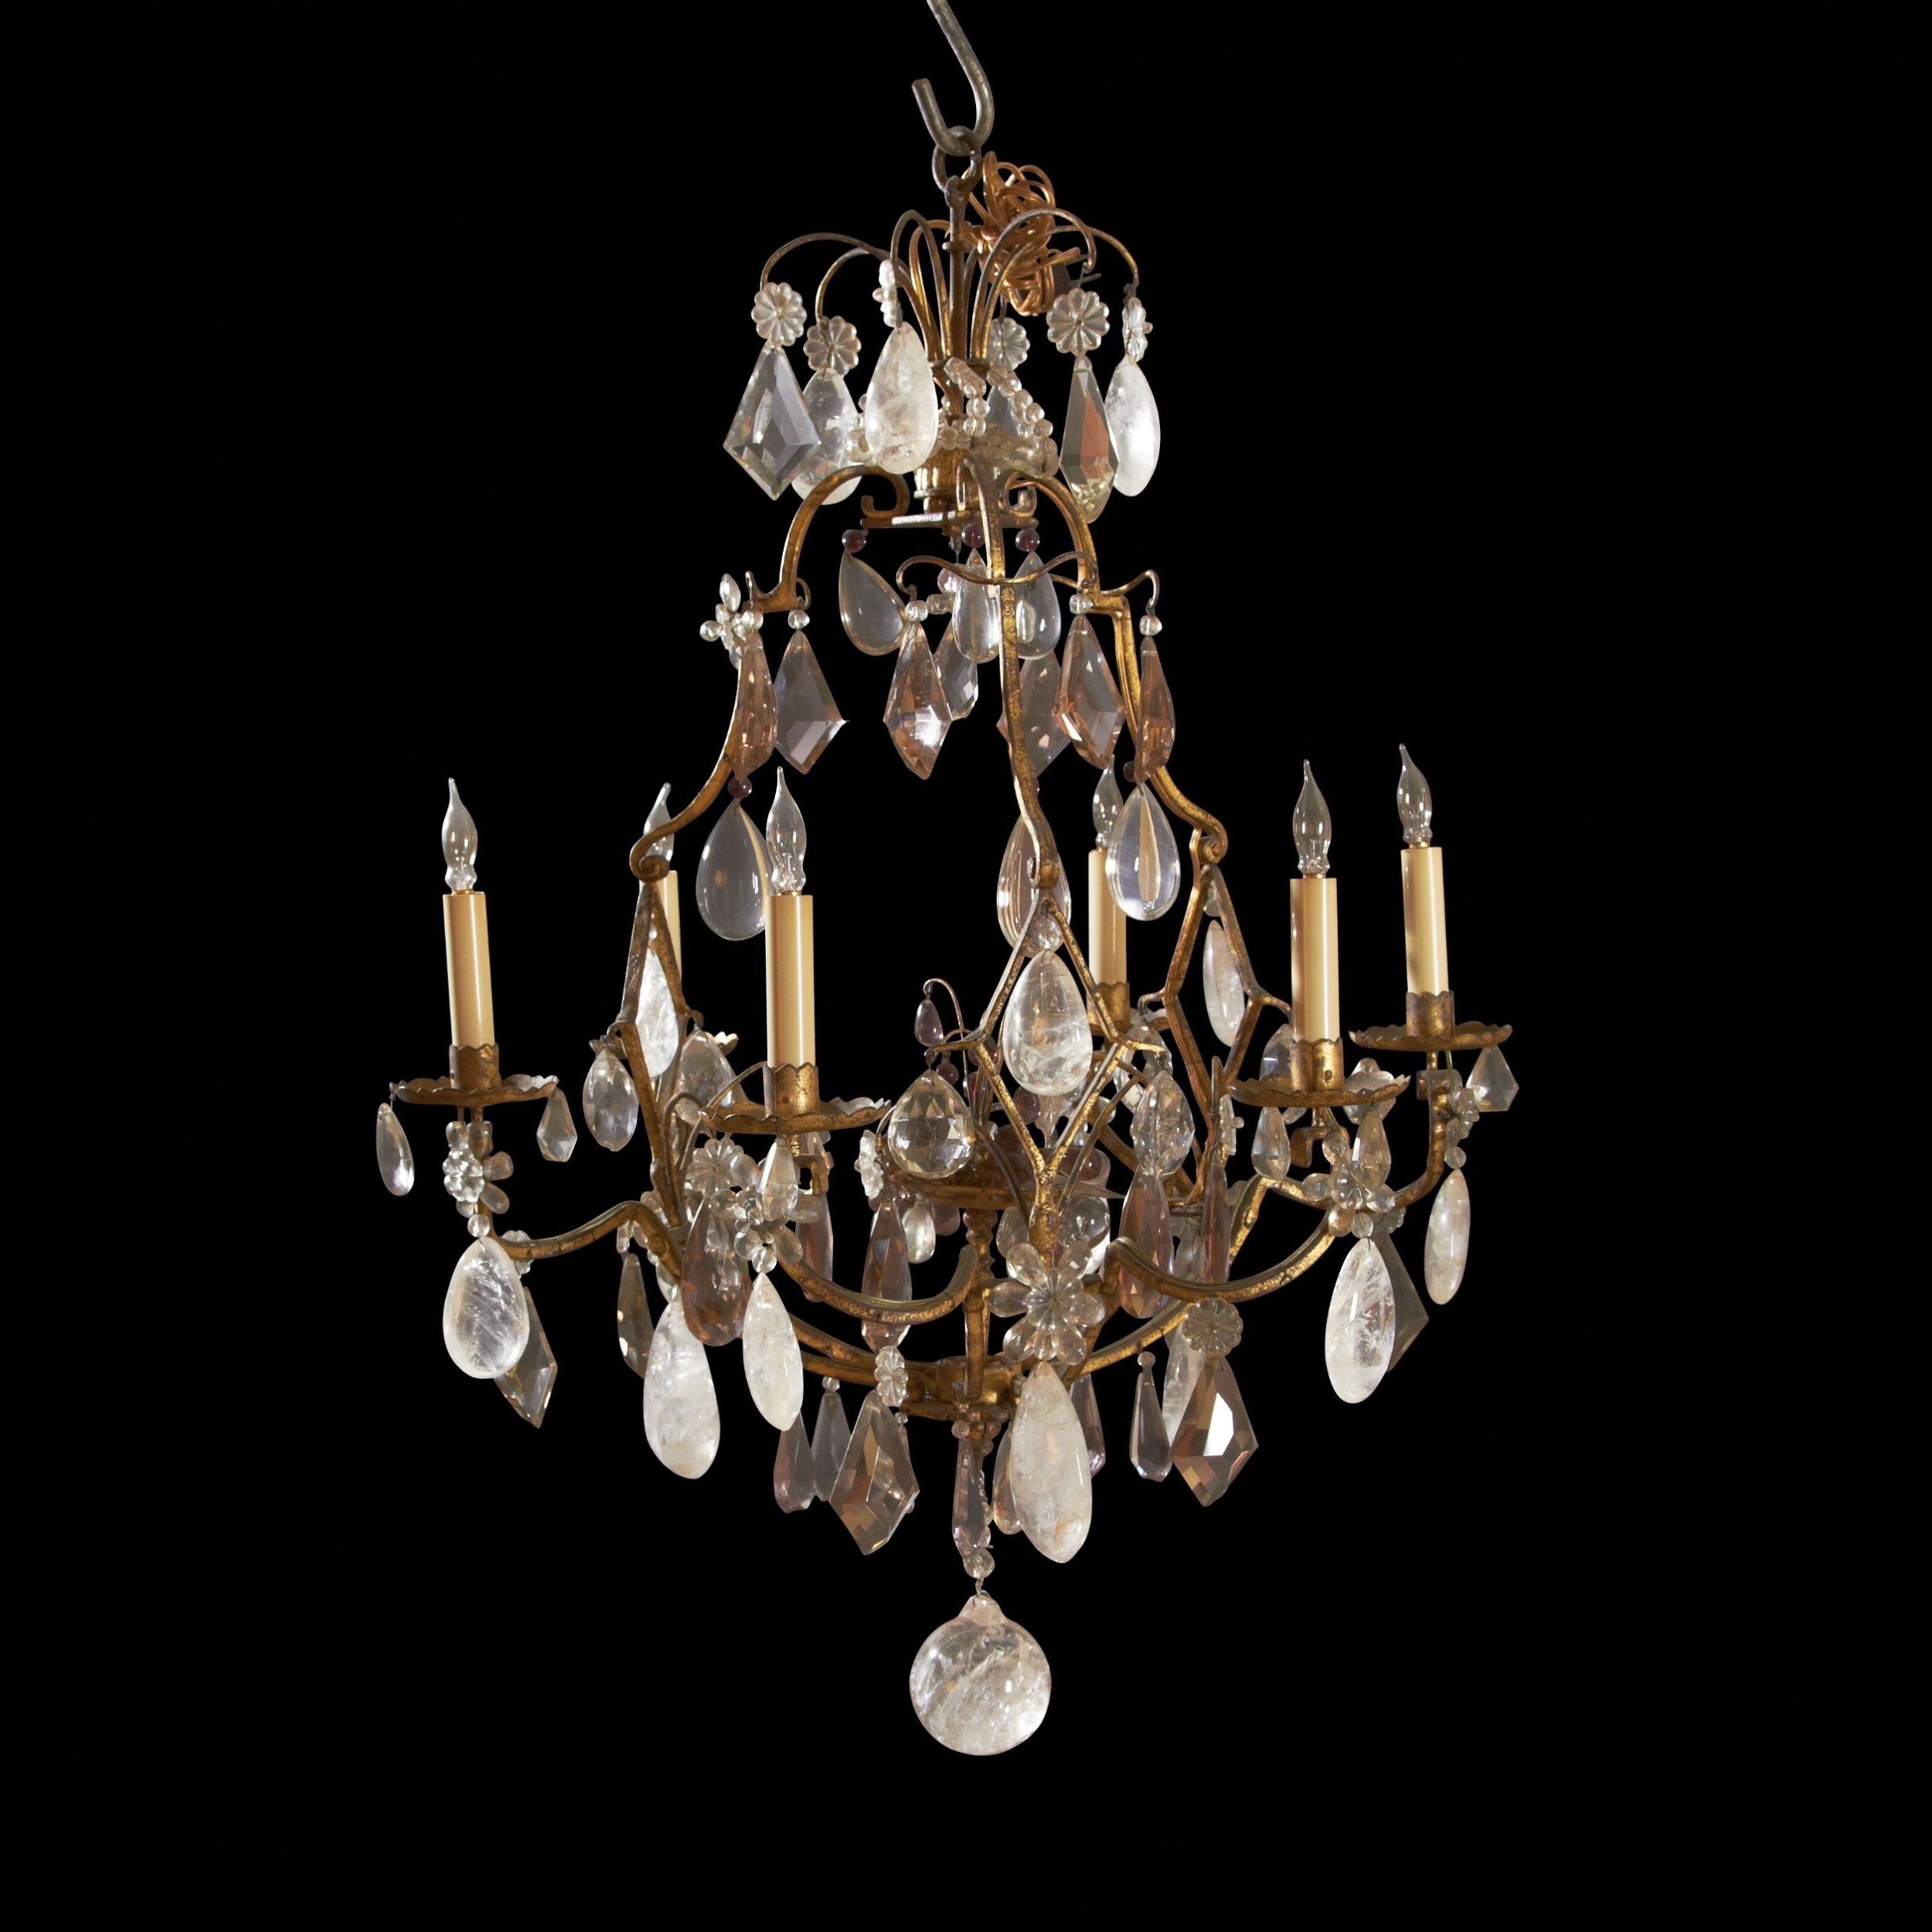 Widely Used Expensive Crystal Chandeliers Regarding Ideas: Mesmerizing Crystal Chandeliers With Beautiful Design For (View 14 of 15)